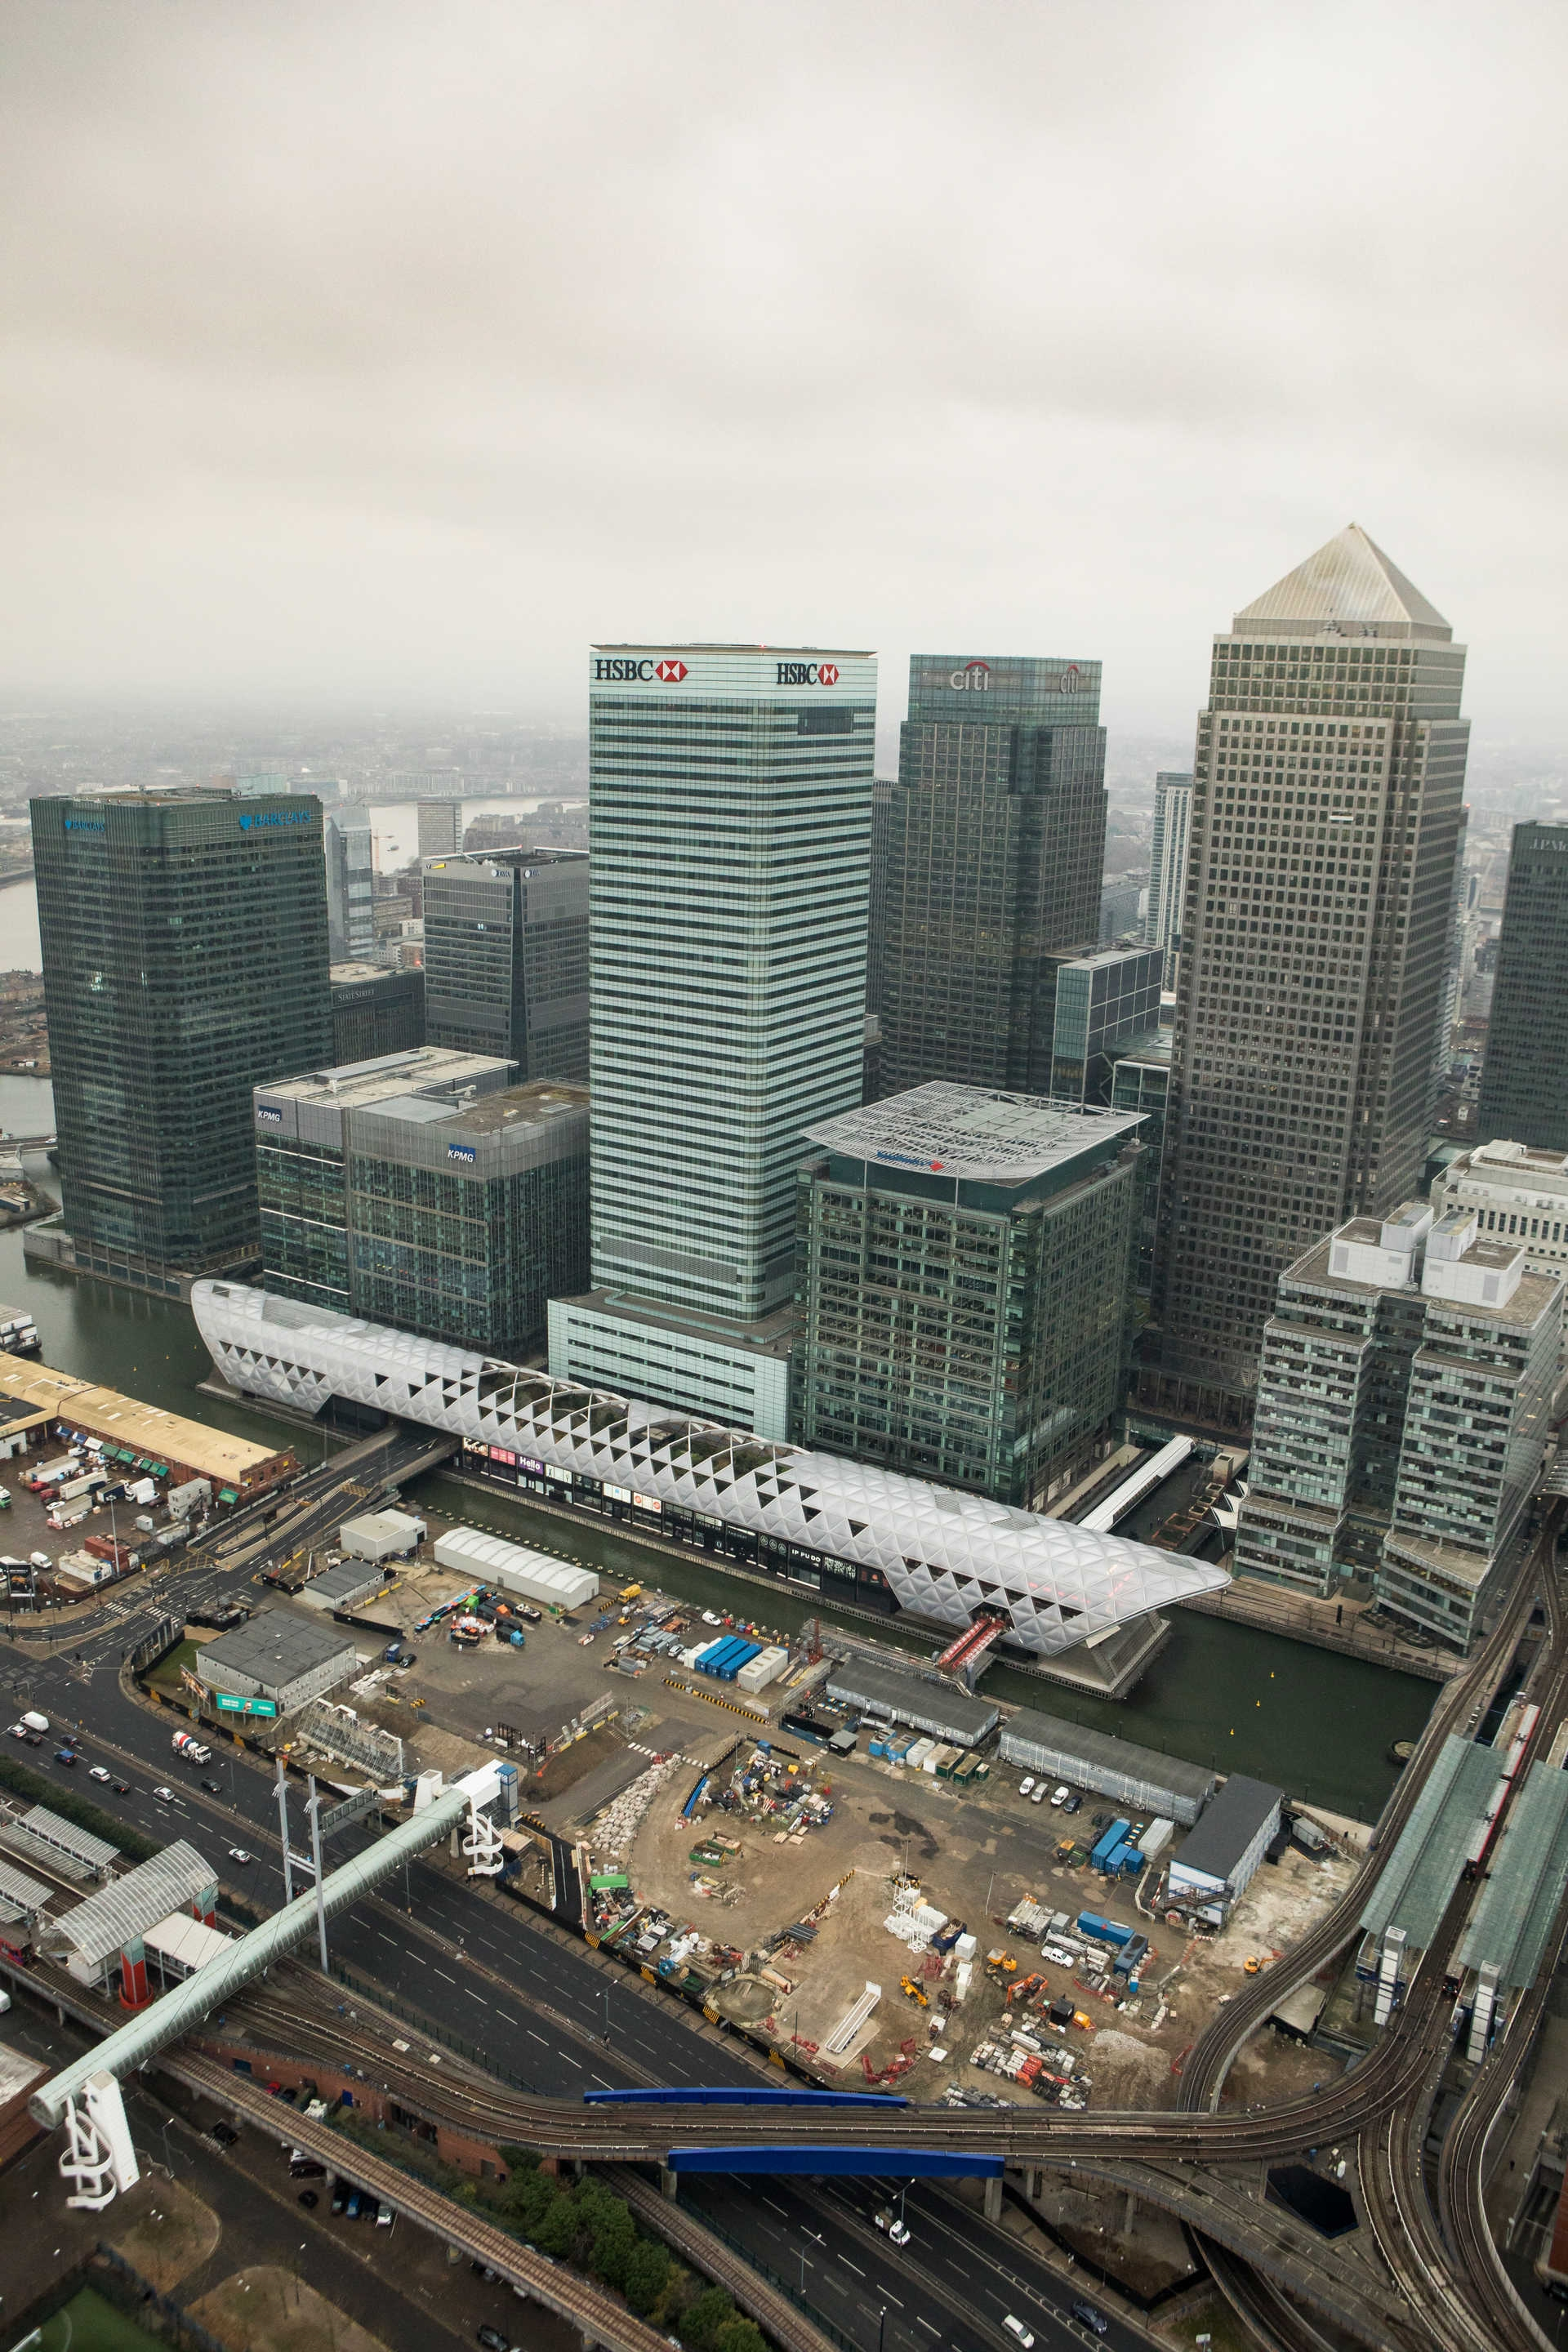 Aerial_view_of_Canary_Wharf_station_January_2017_254718 (1).jpg